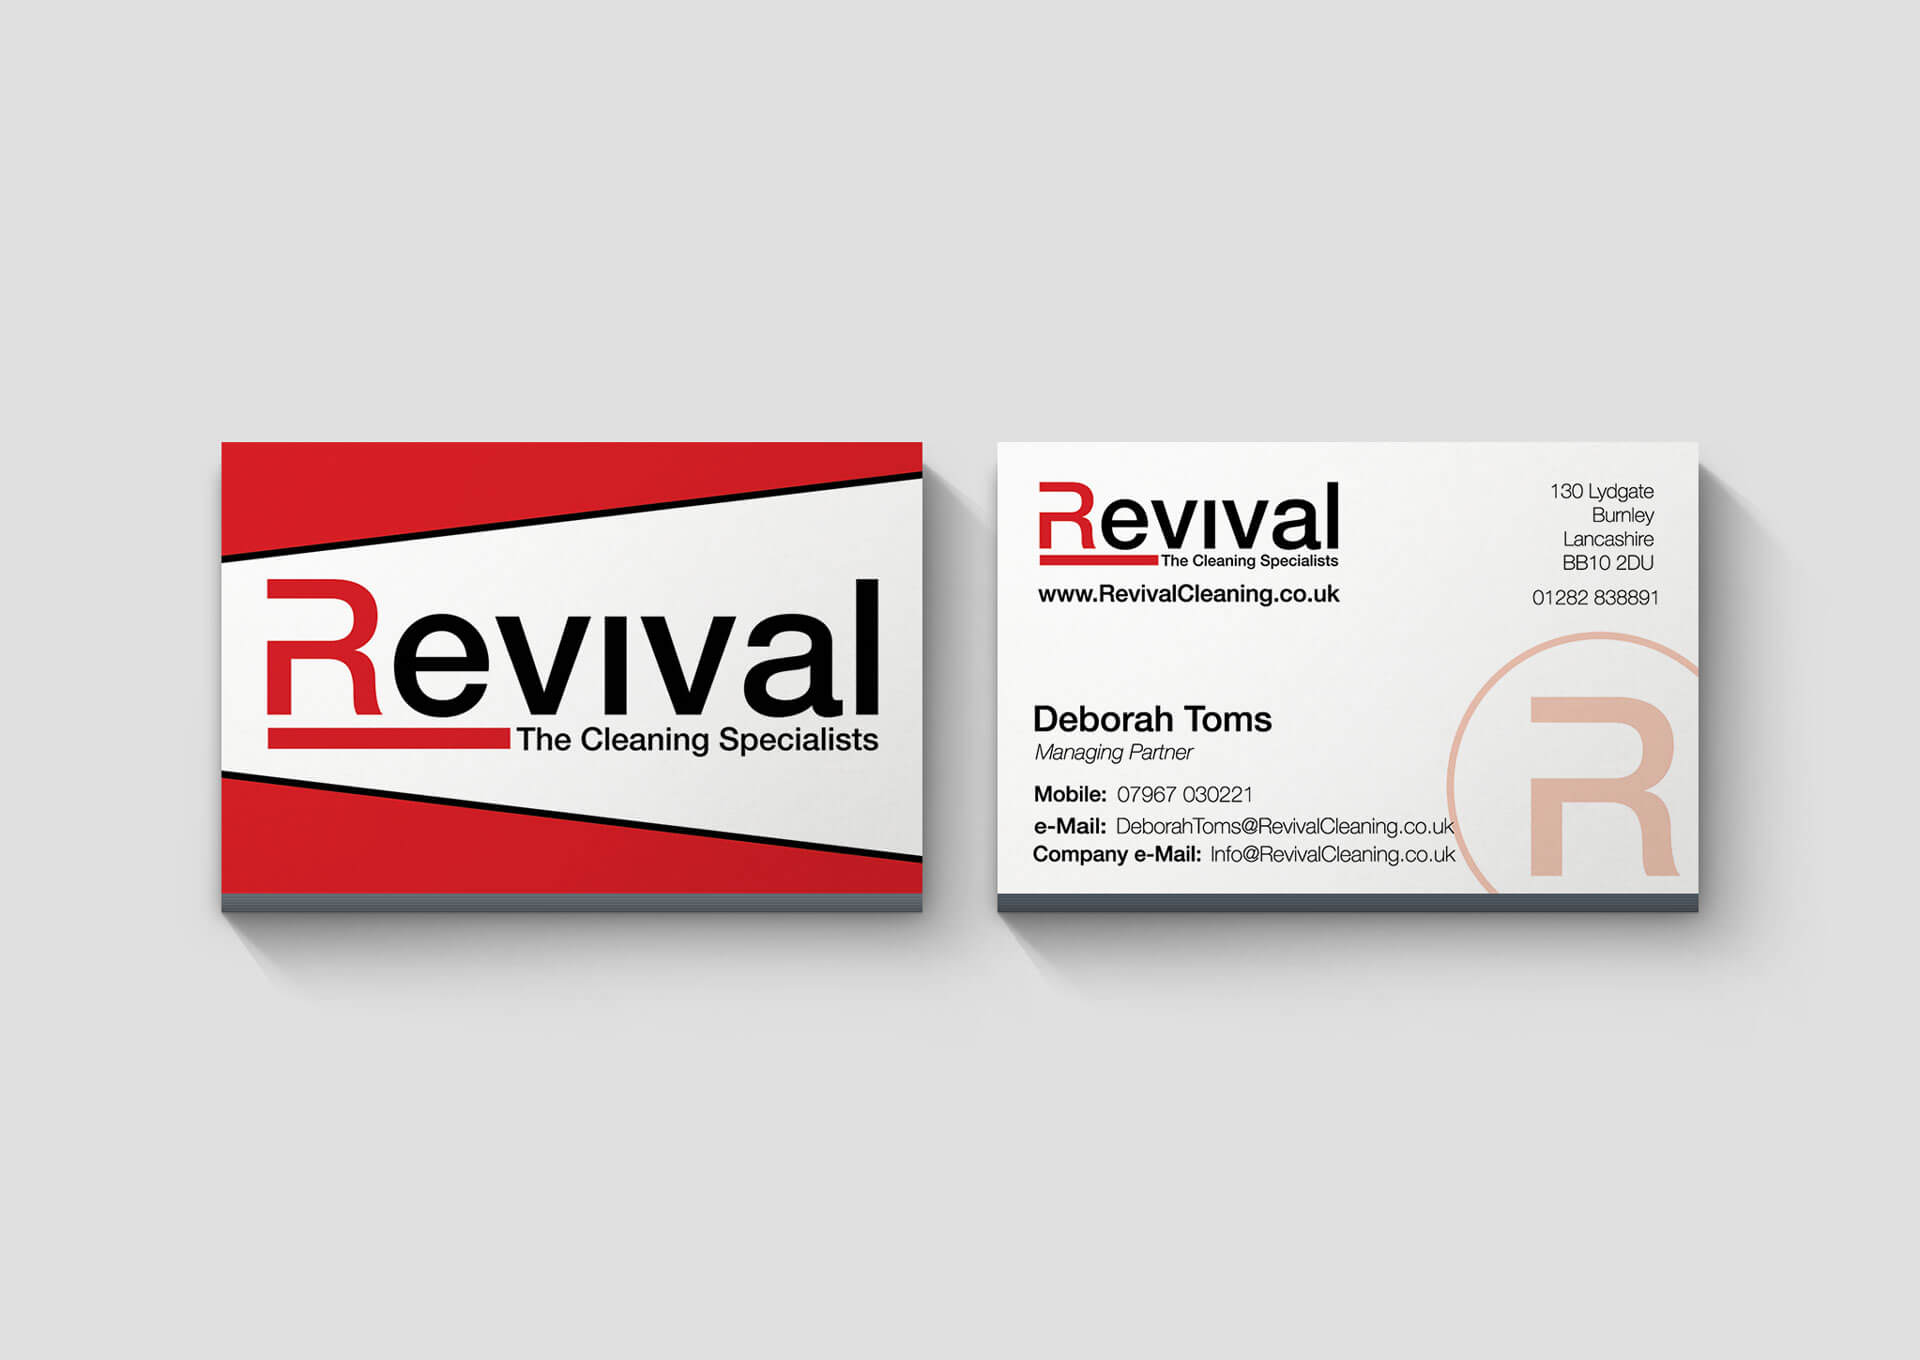 Revival Cleaning Business Card Design